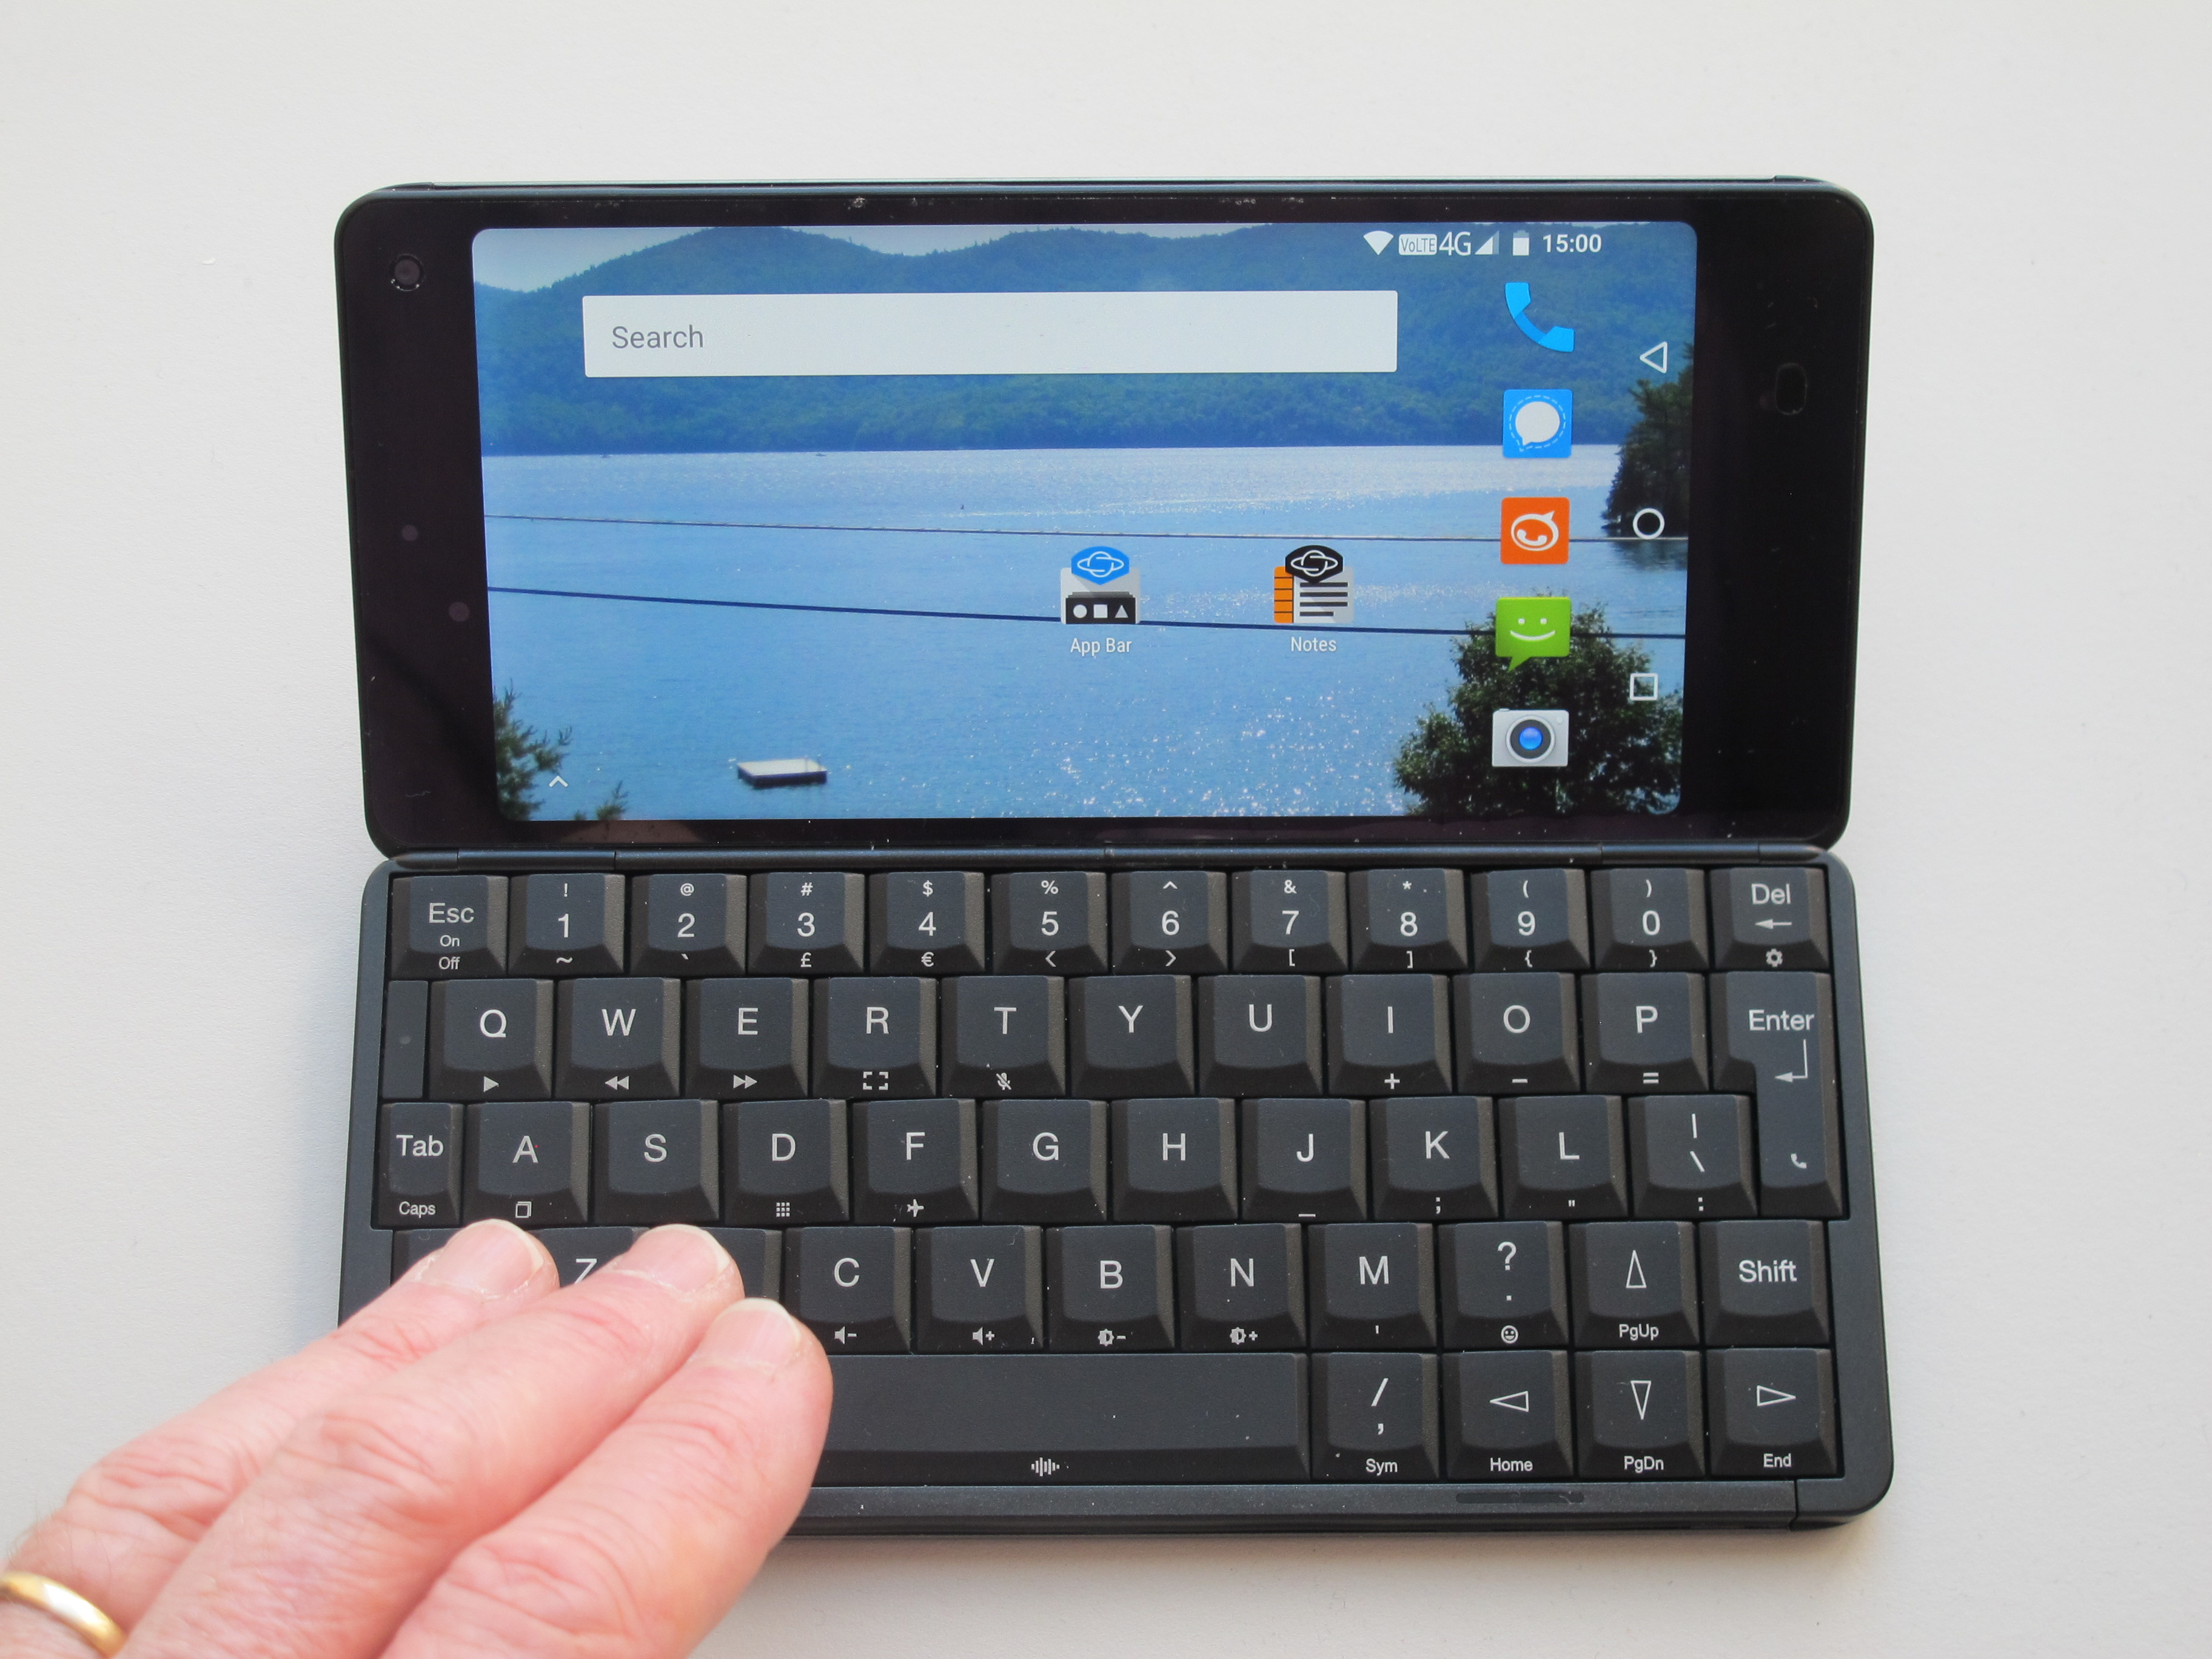 The Practical Nomad blog: A review of the Gemini PDA